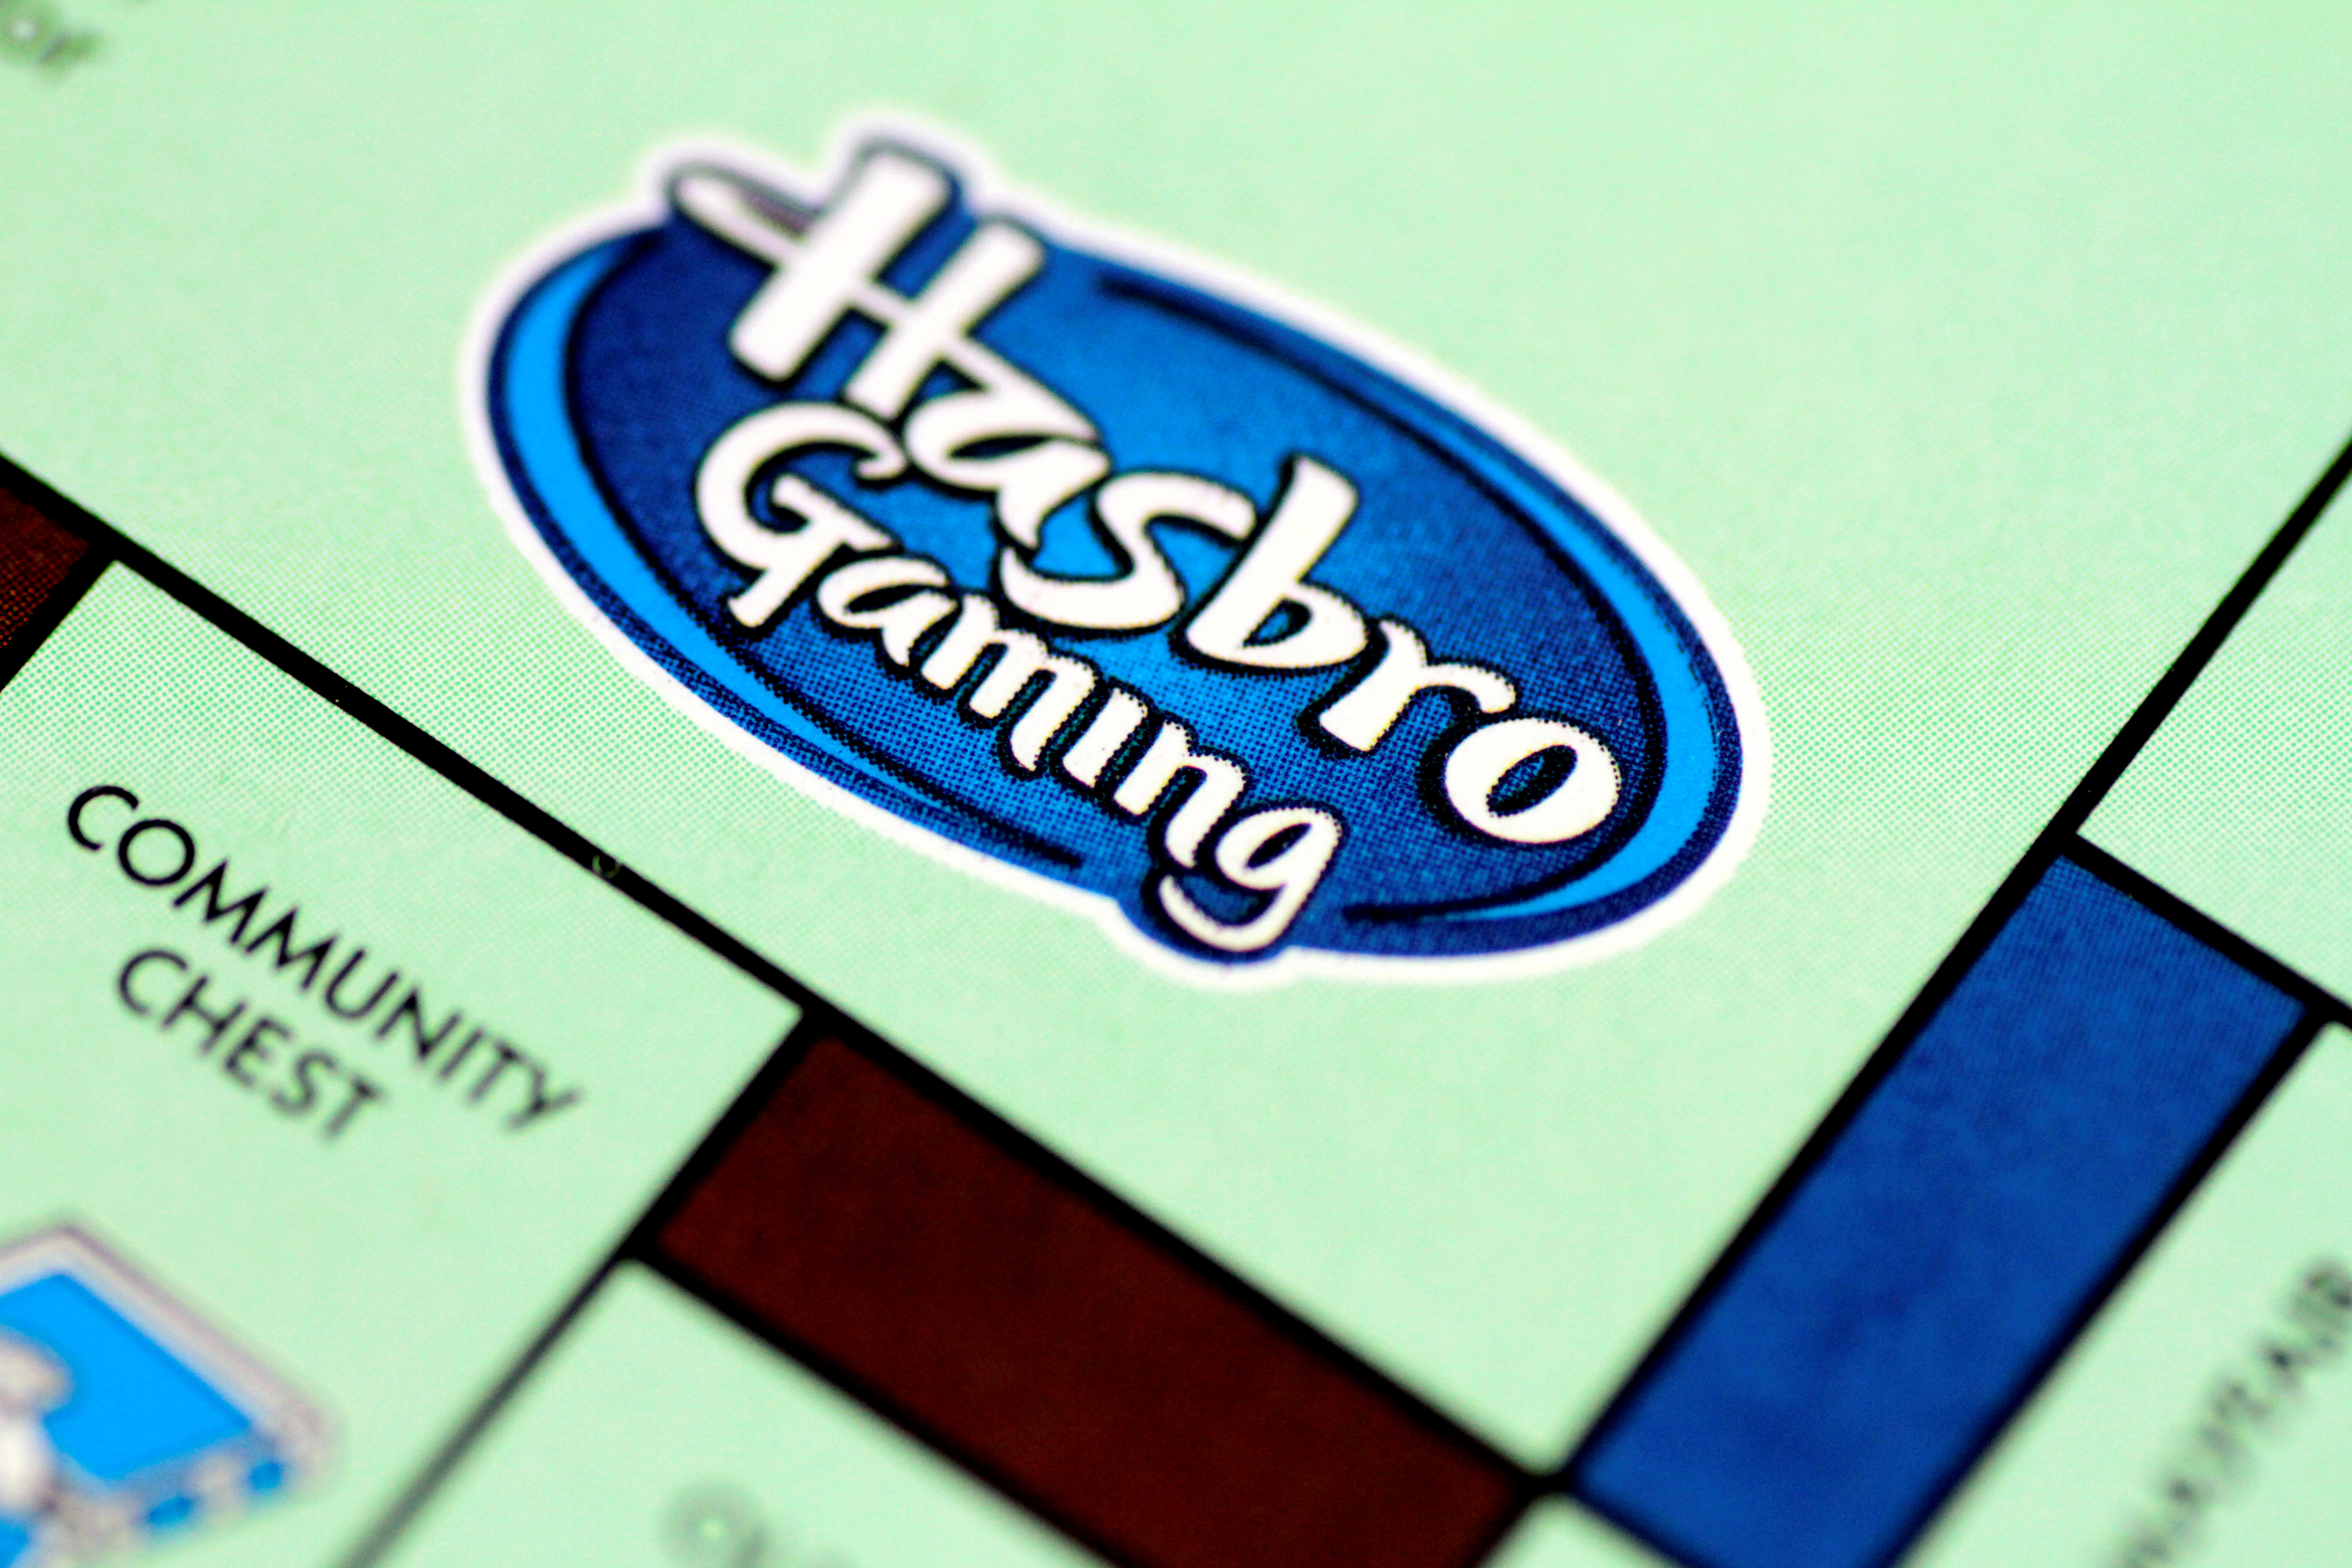 FIILE PHOTO: A Monopoly board game by Hasbro Gaming is seen in this illustration photo August 13, 2017. REUTERS/Thomas White/Illustration